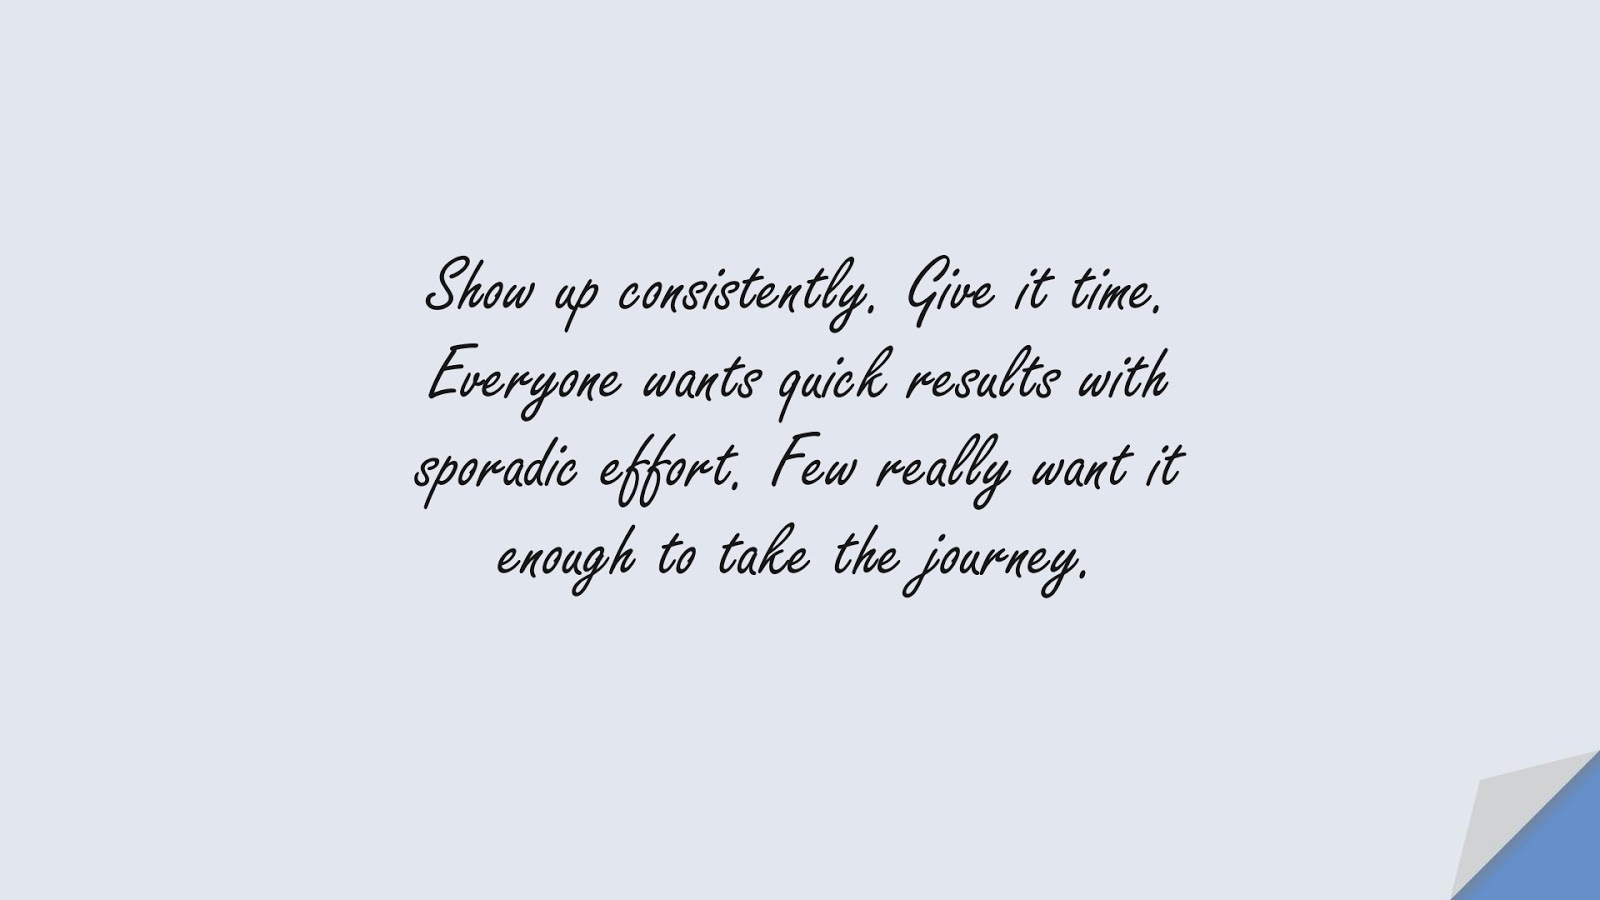 Show up consistently. Give it time. Everyone wants quick results with sporadic effort. Few really want it enough to take the journey.FALSE